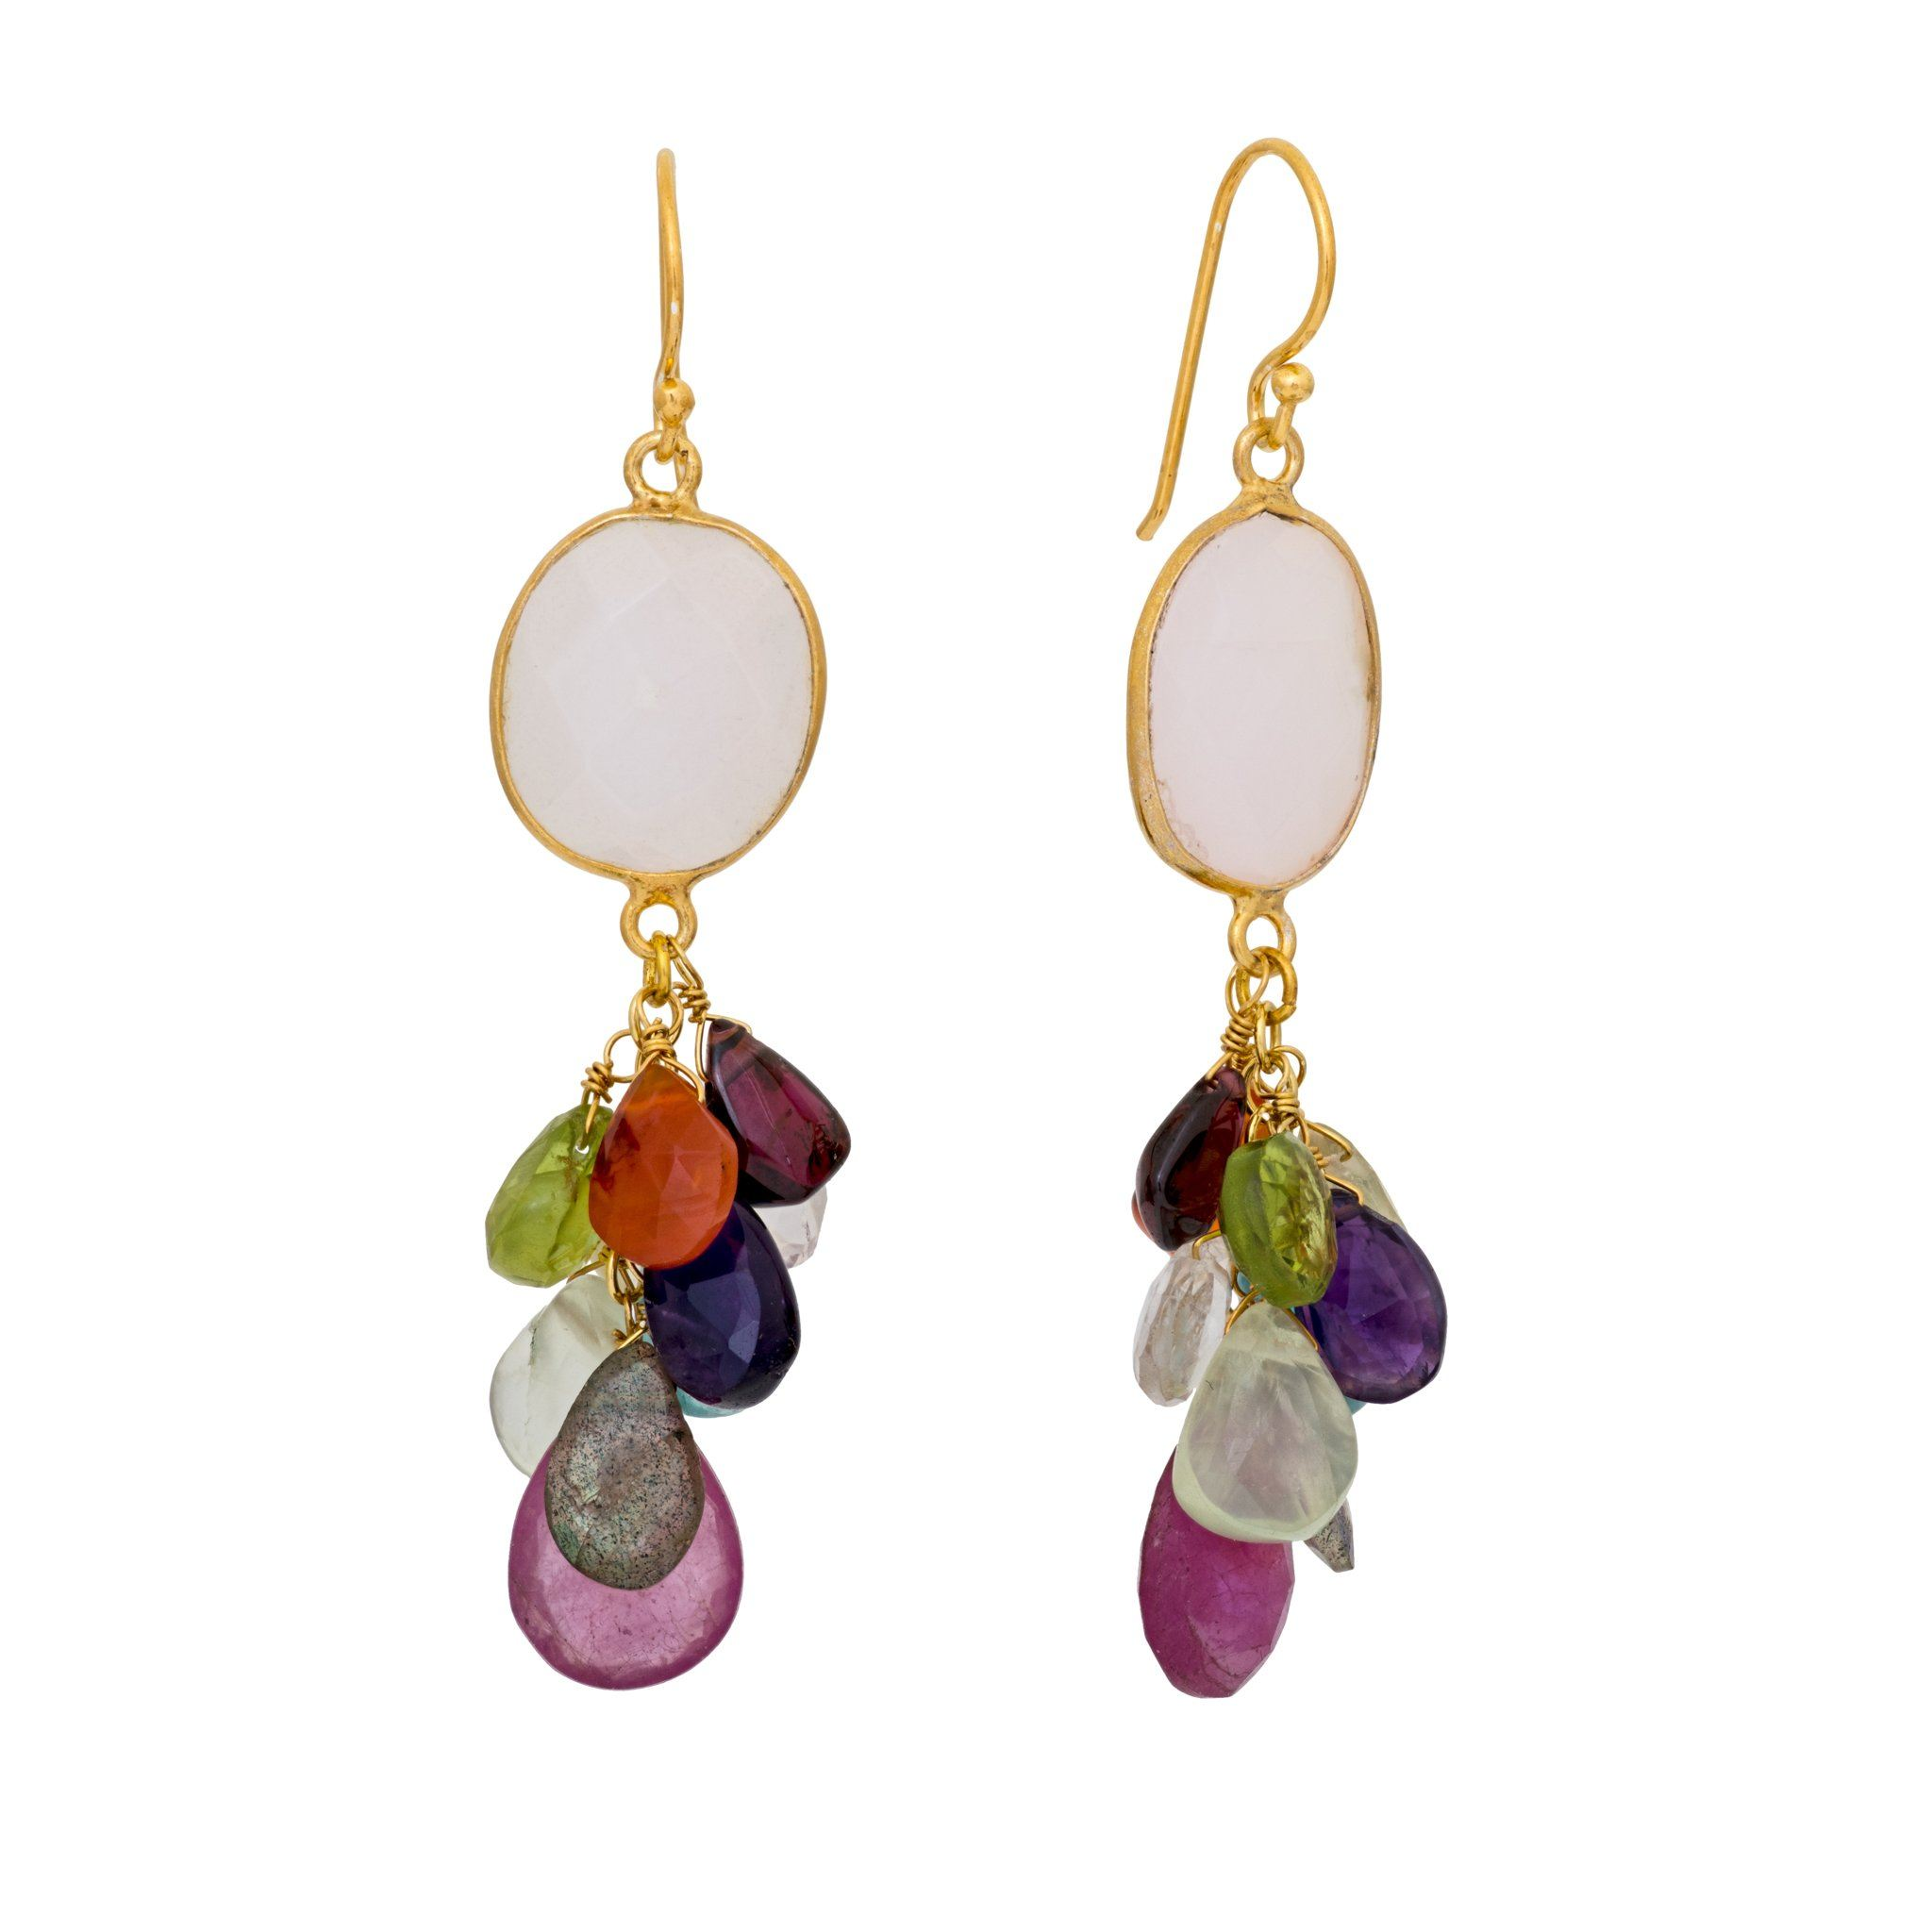 LUZ mix of summer quartz cluster earrings